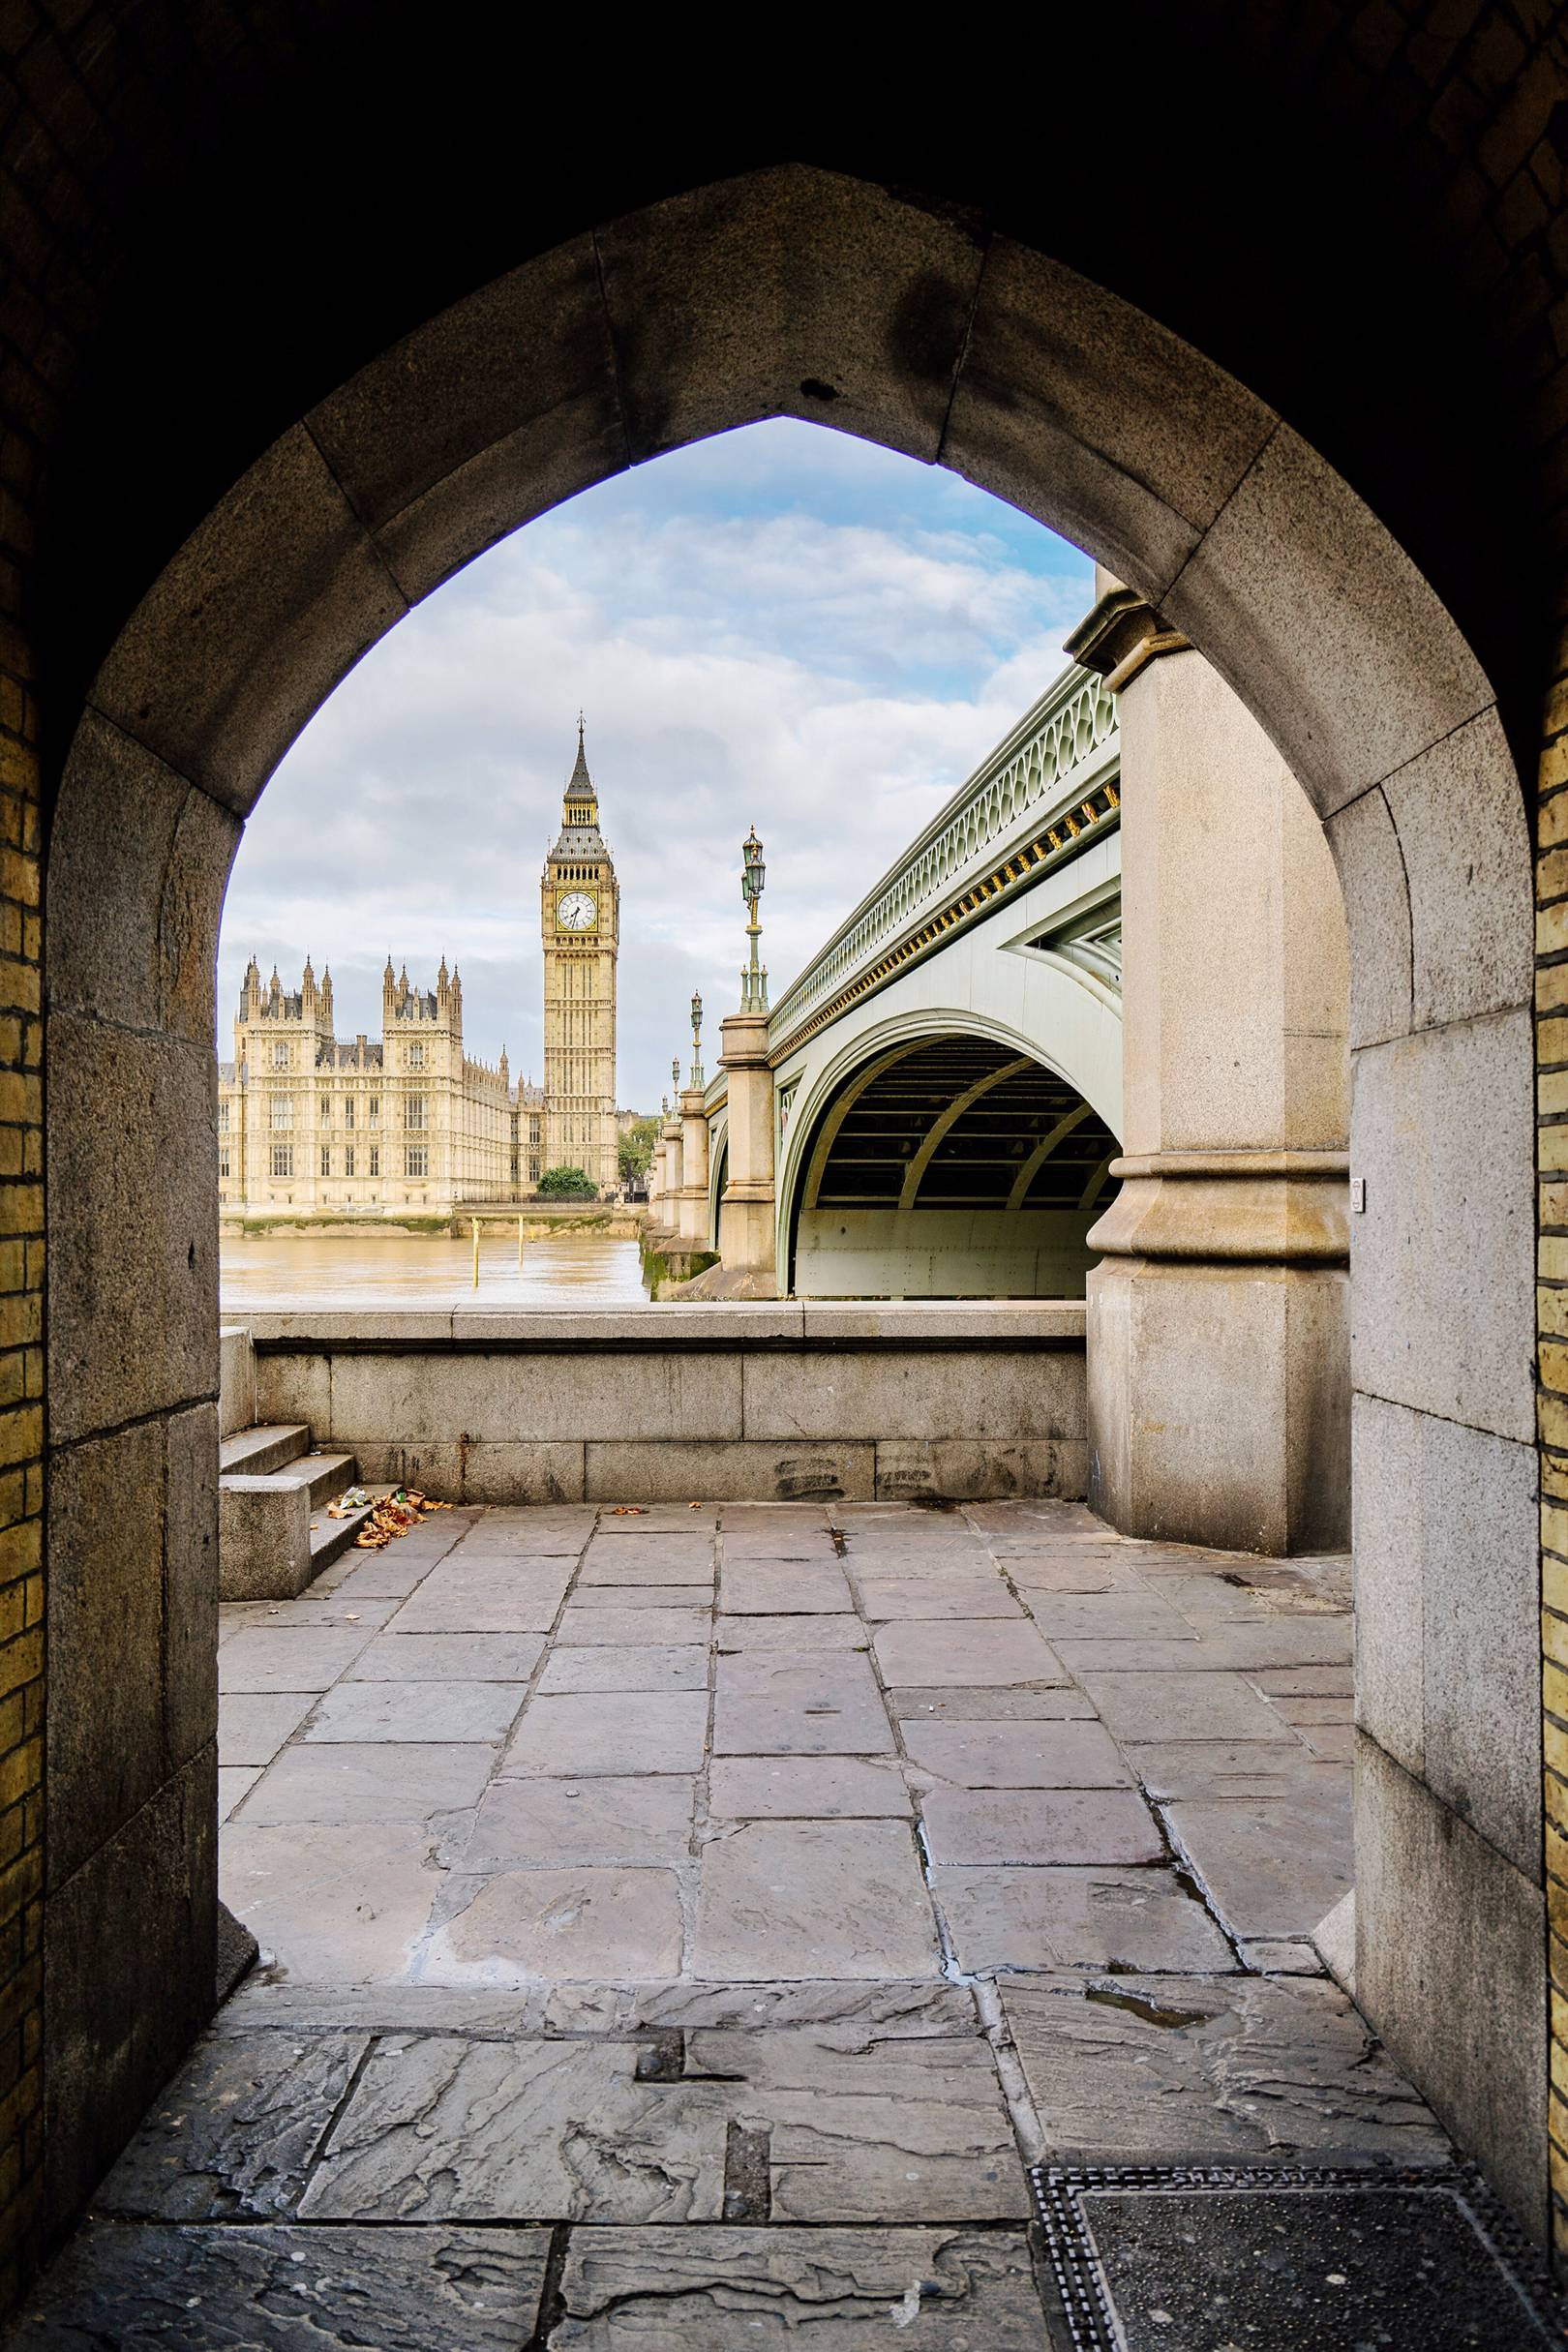 The best photographs of London (and where to take them)